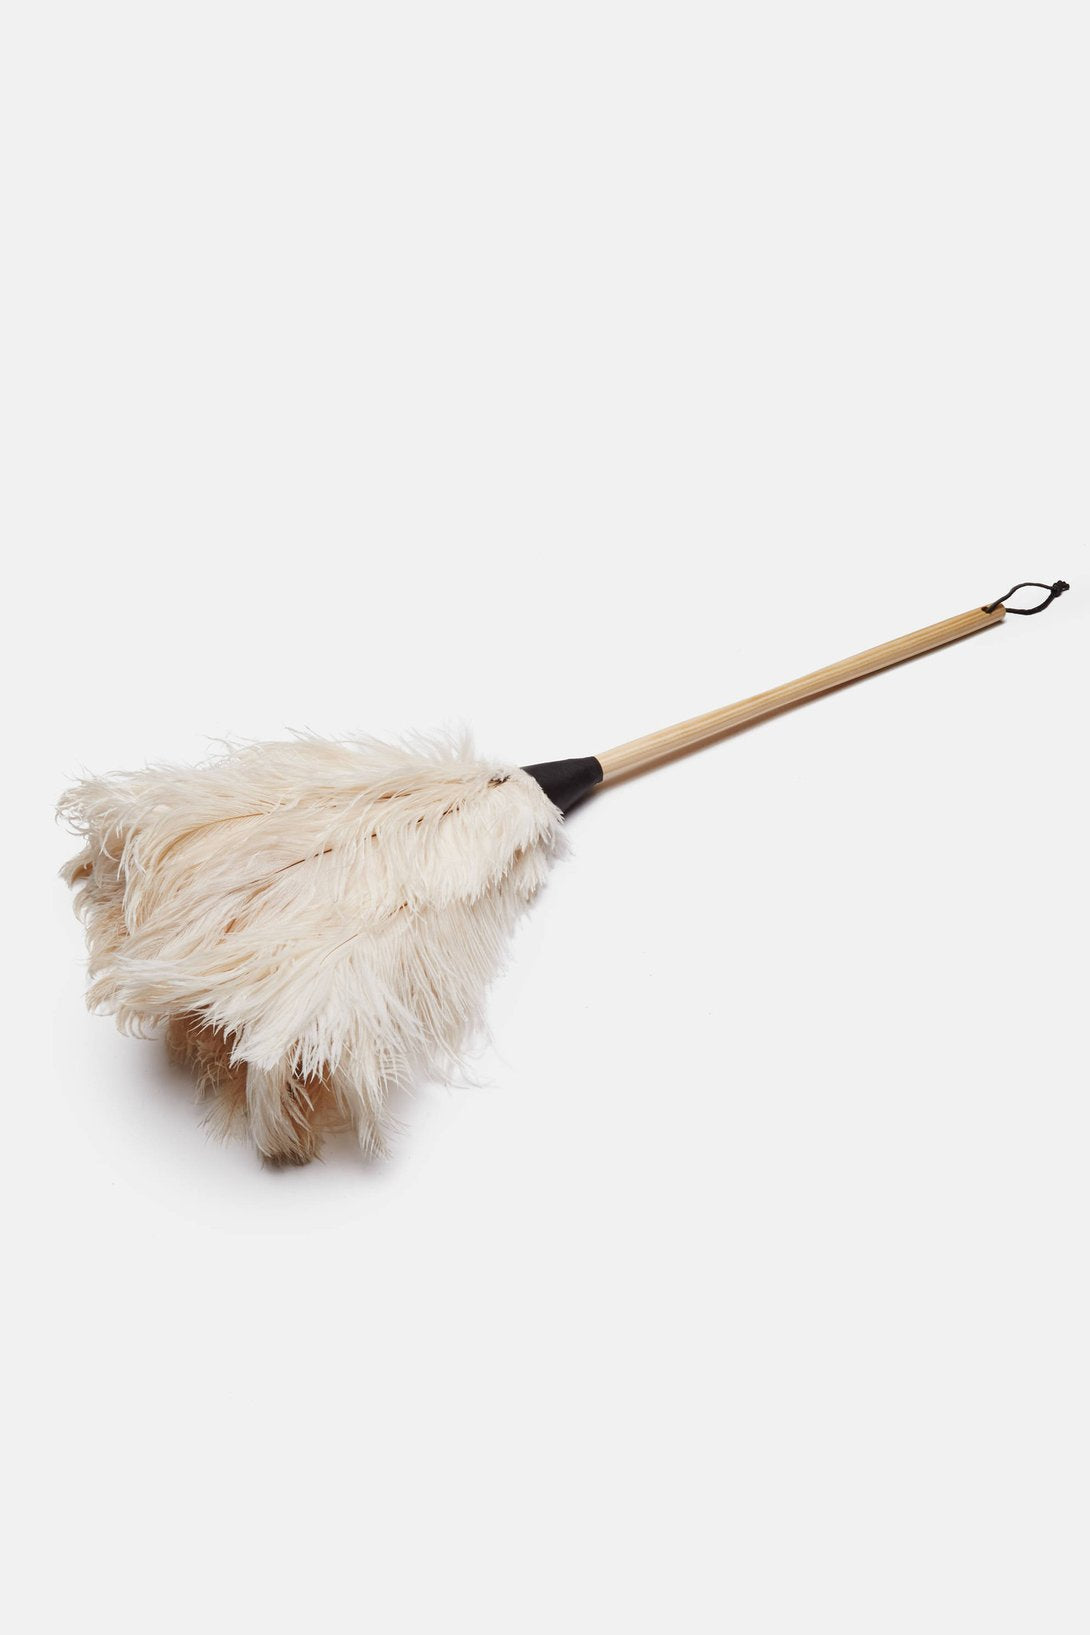 Ostrich Feather Duster- Redecker- LIMITED EDITION WHITE FEATHERS 35cm